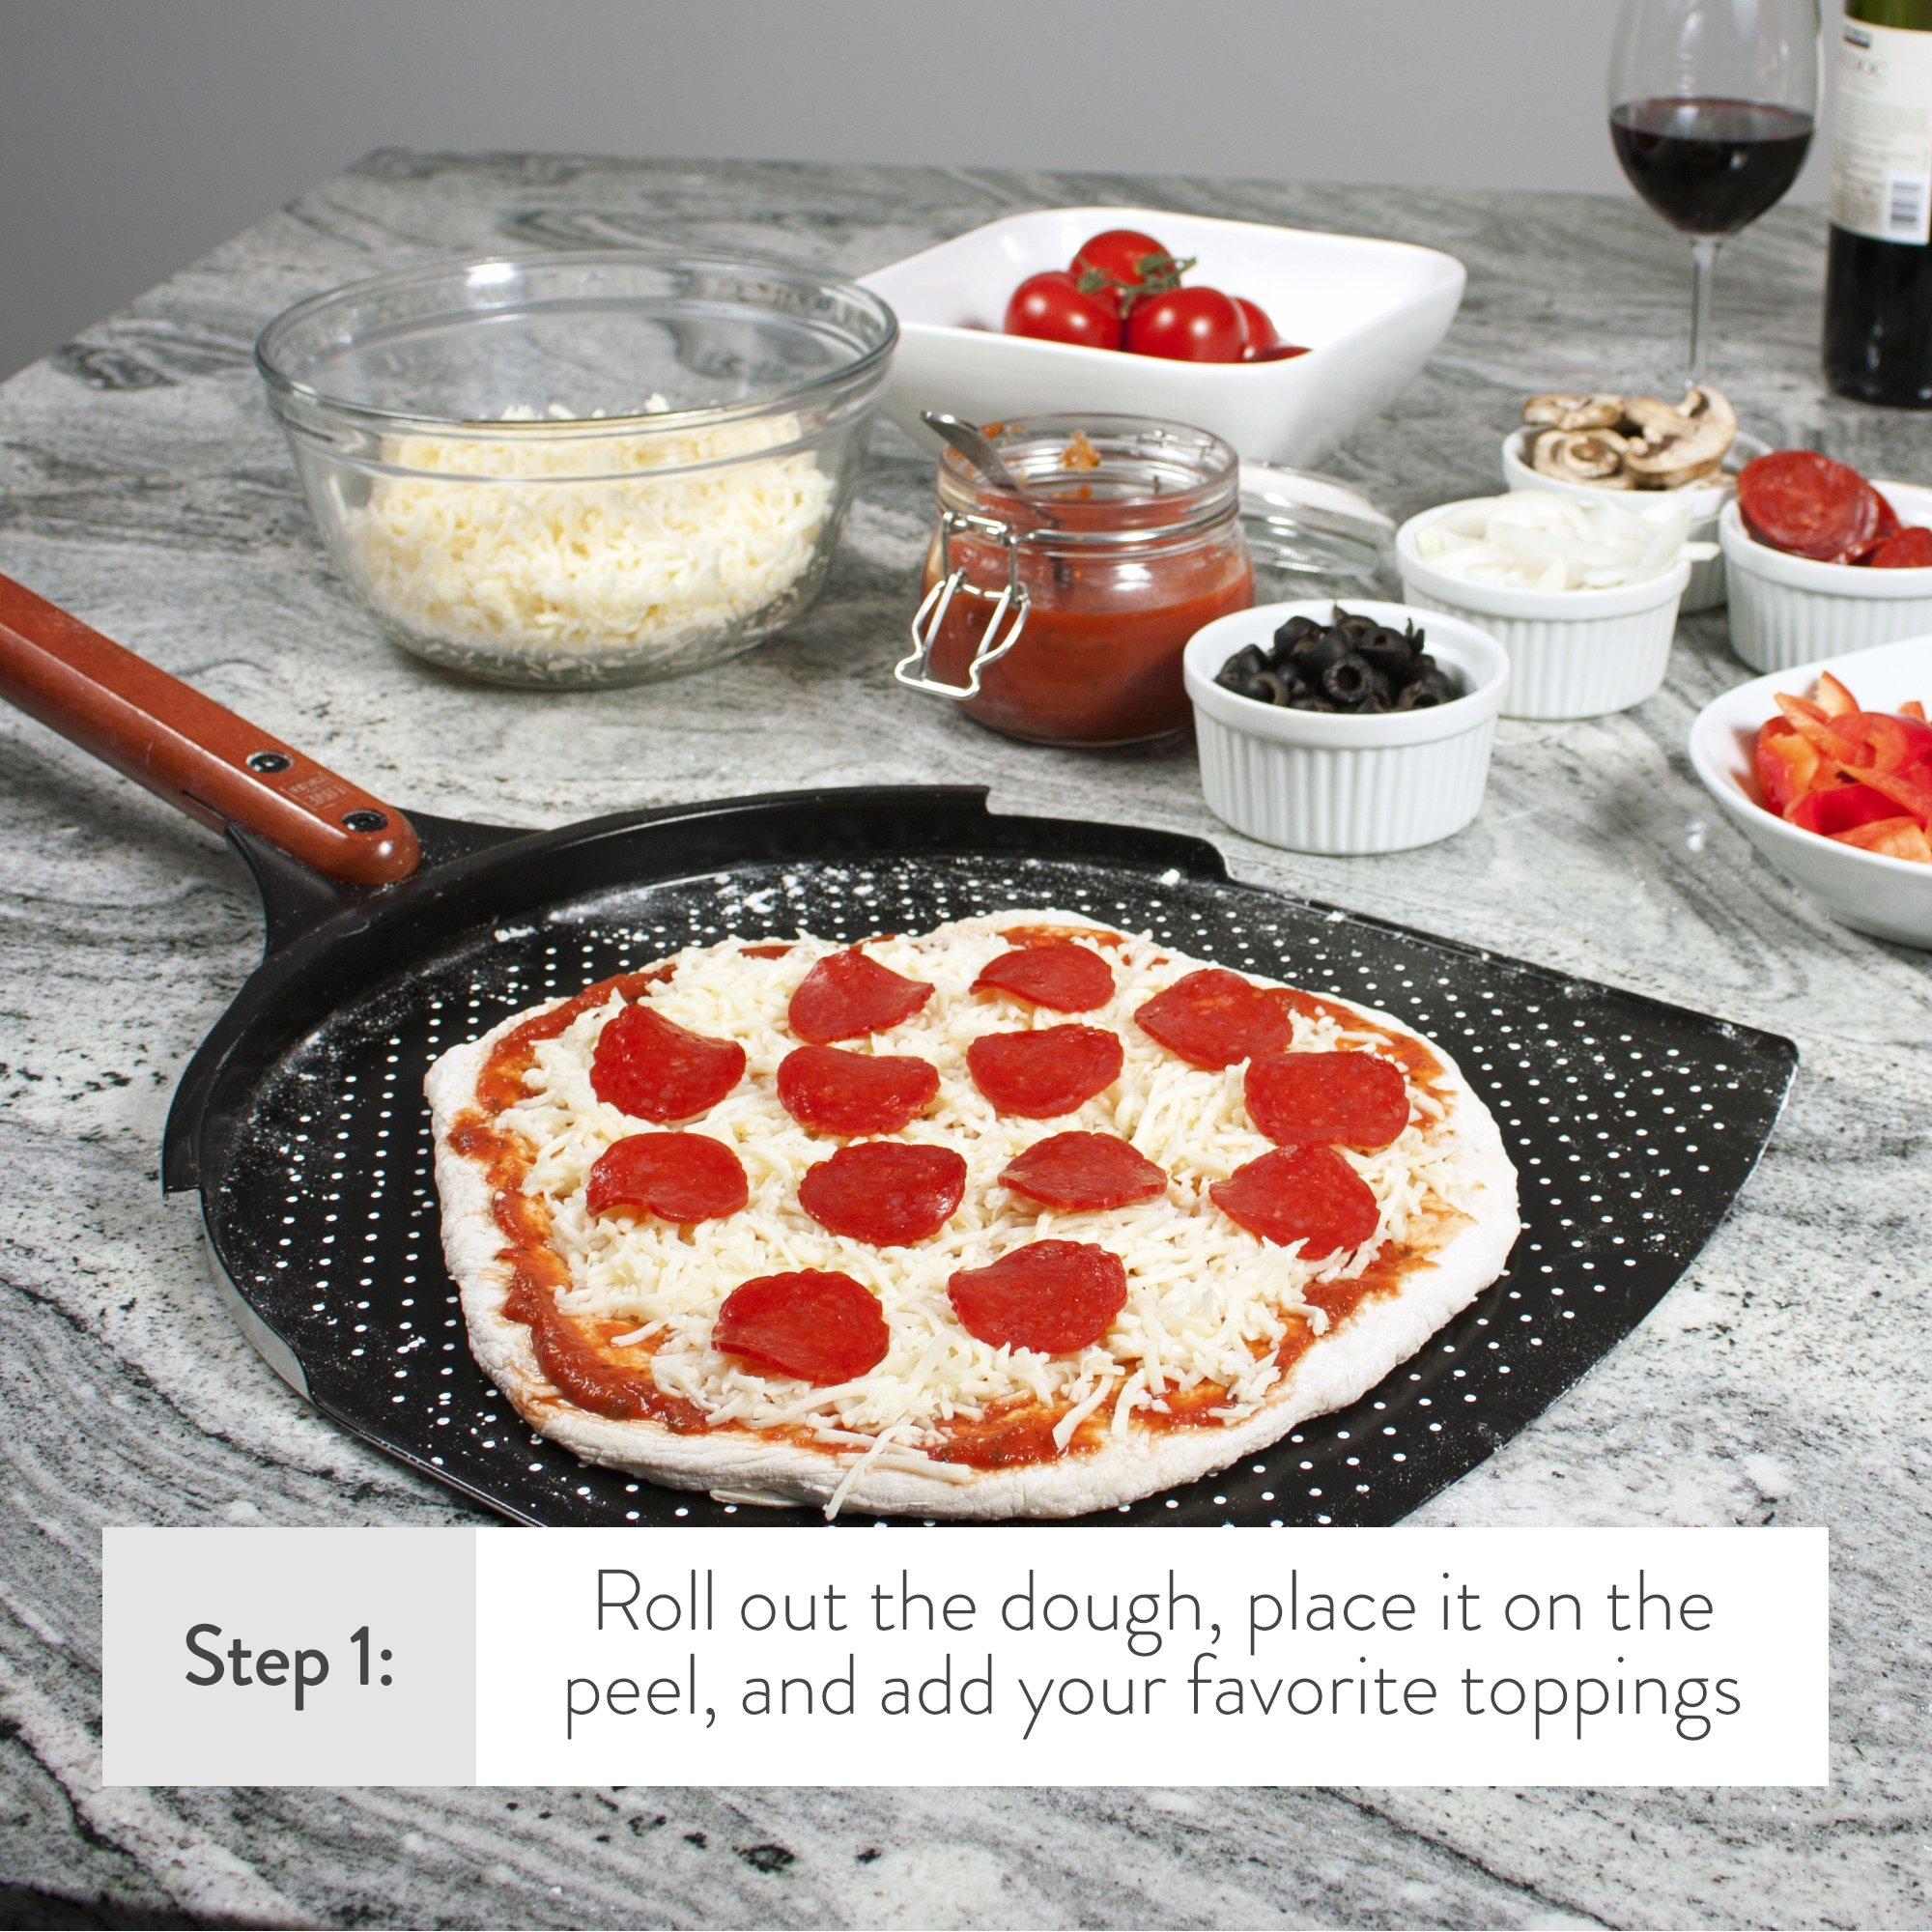 The Ultimate Pizza Making Set - 14'' x 16'' Pizza Stone, 14'' Aluminum Pizza Peel and 14'' Stainless Steel Rocker Pizza Cutter | Great for Baking Pizza, Cookies and Bread in Any Oven or Grill by Love This Kitchen (Image #4)